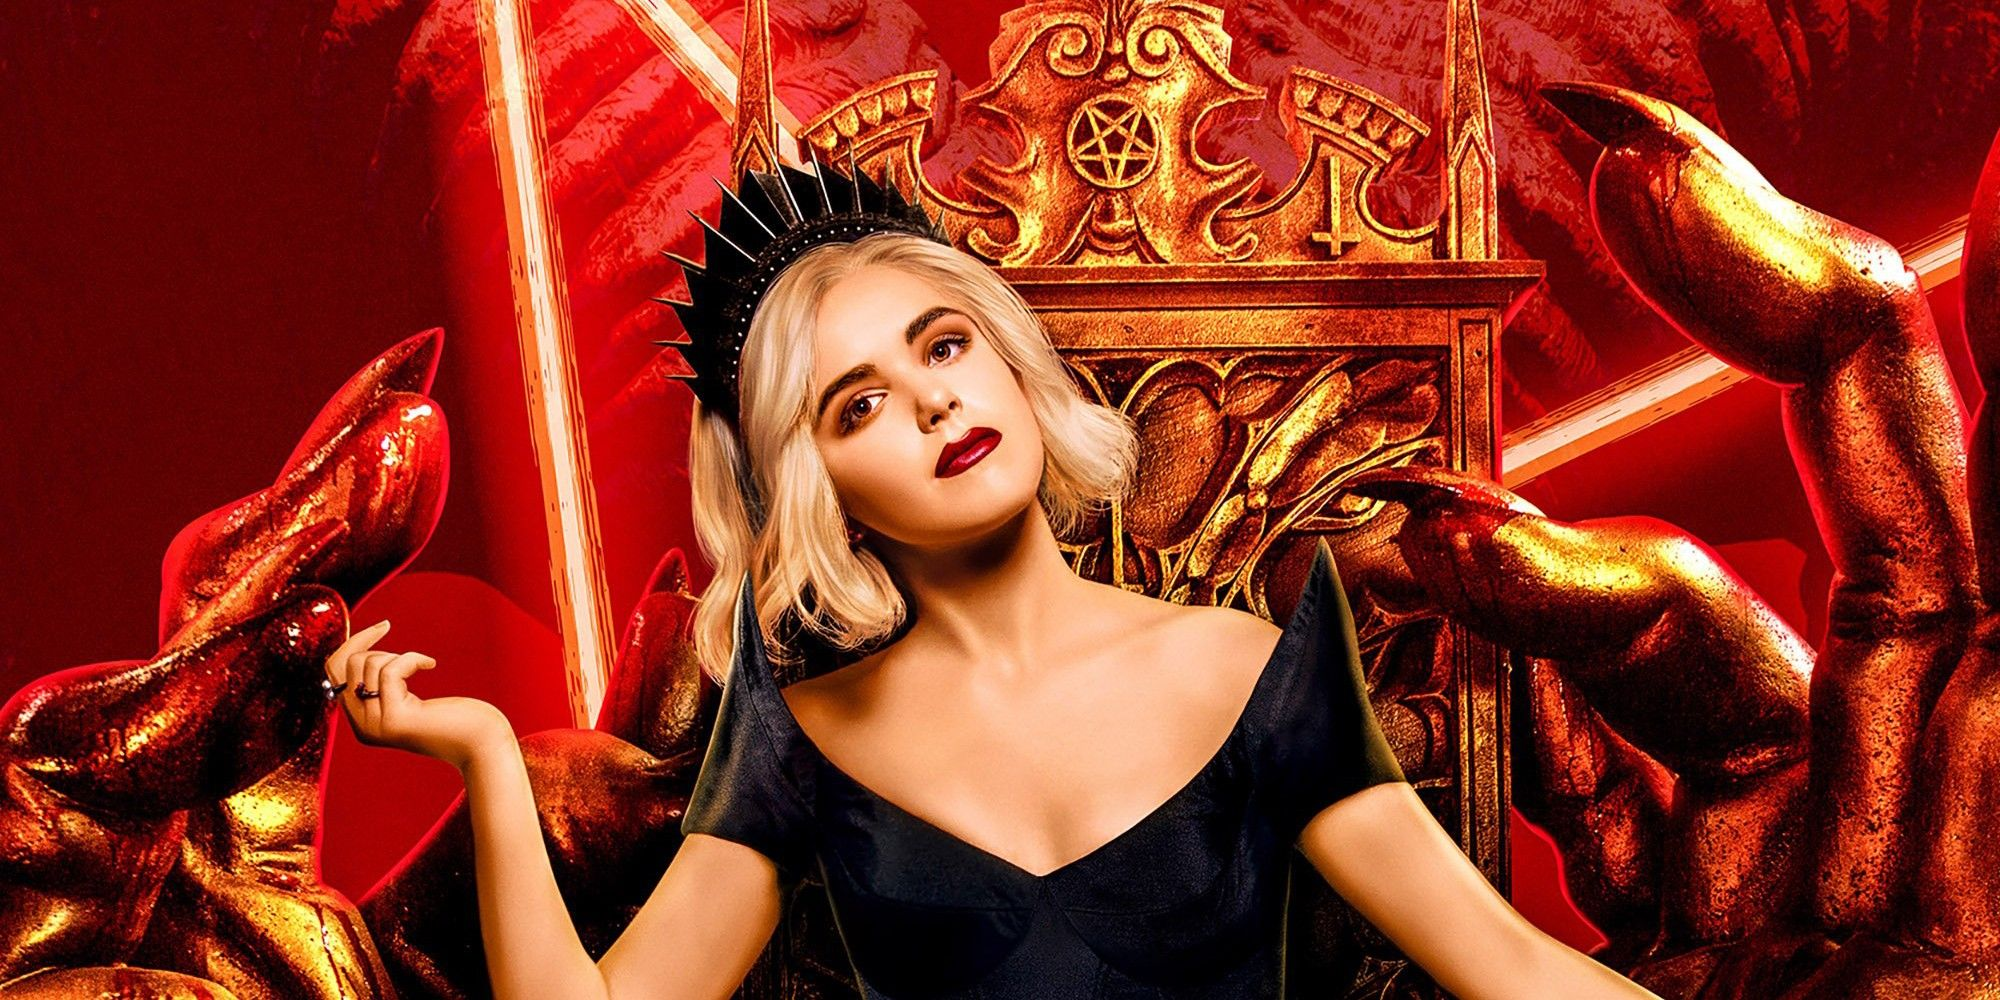 Chilling Adventures of Sabrina Creator Teases 'Extremely Wicked' News